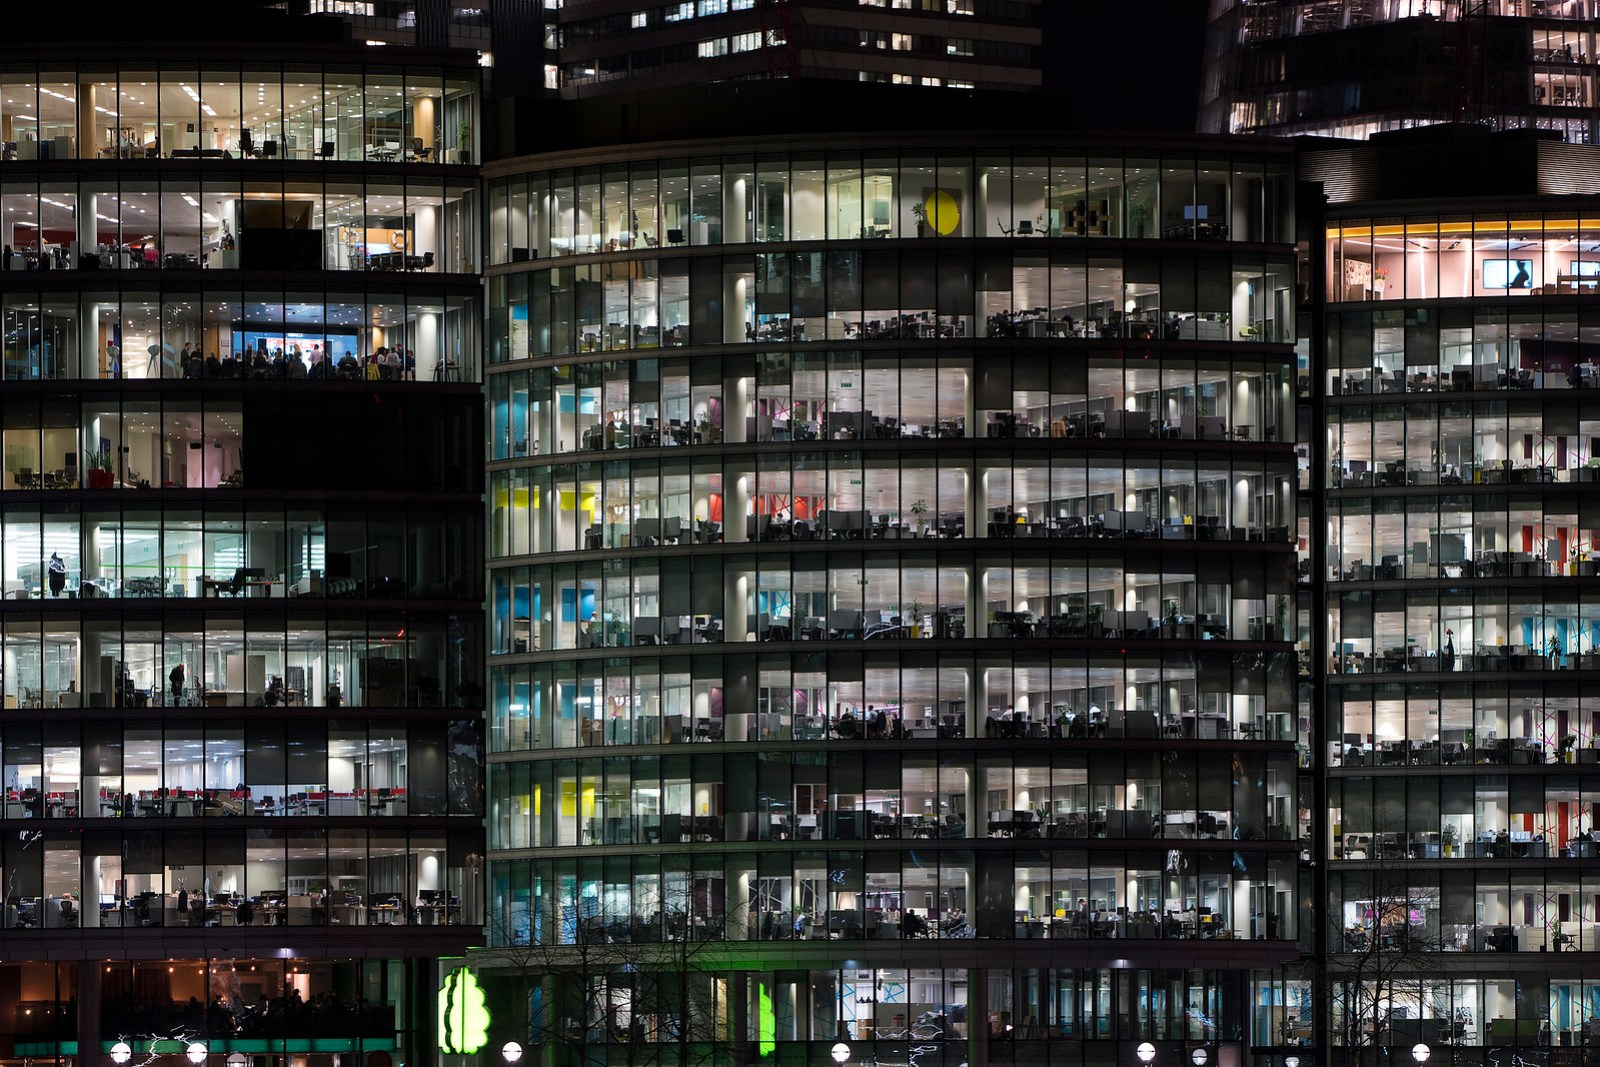 Building in London at night